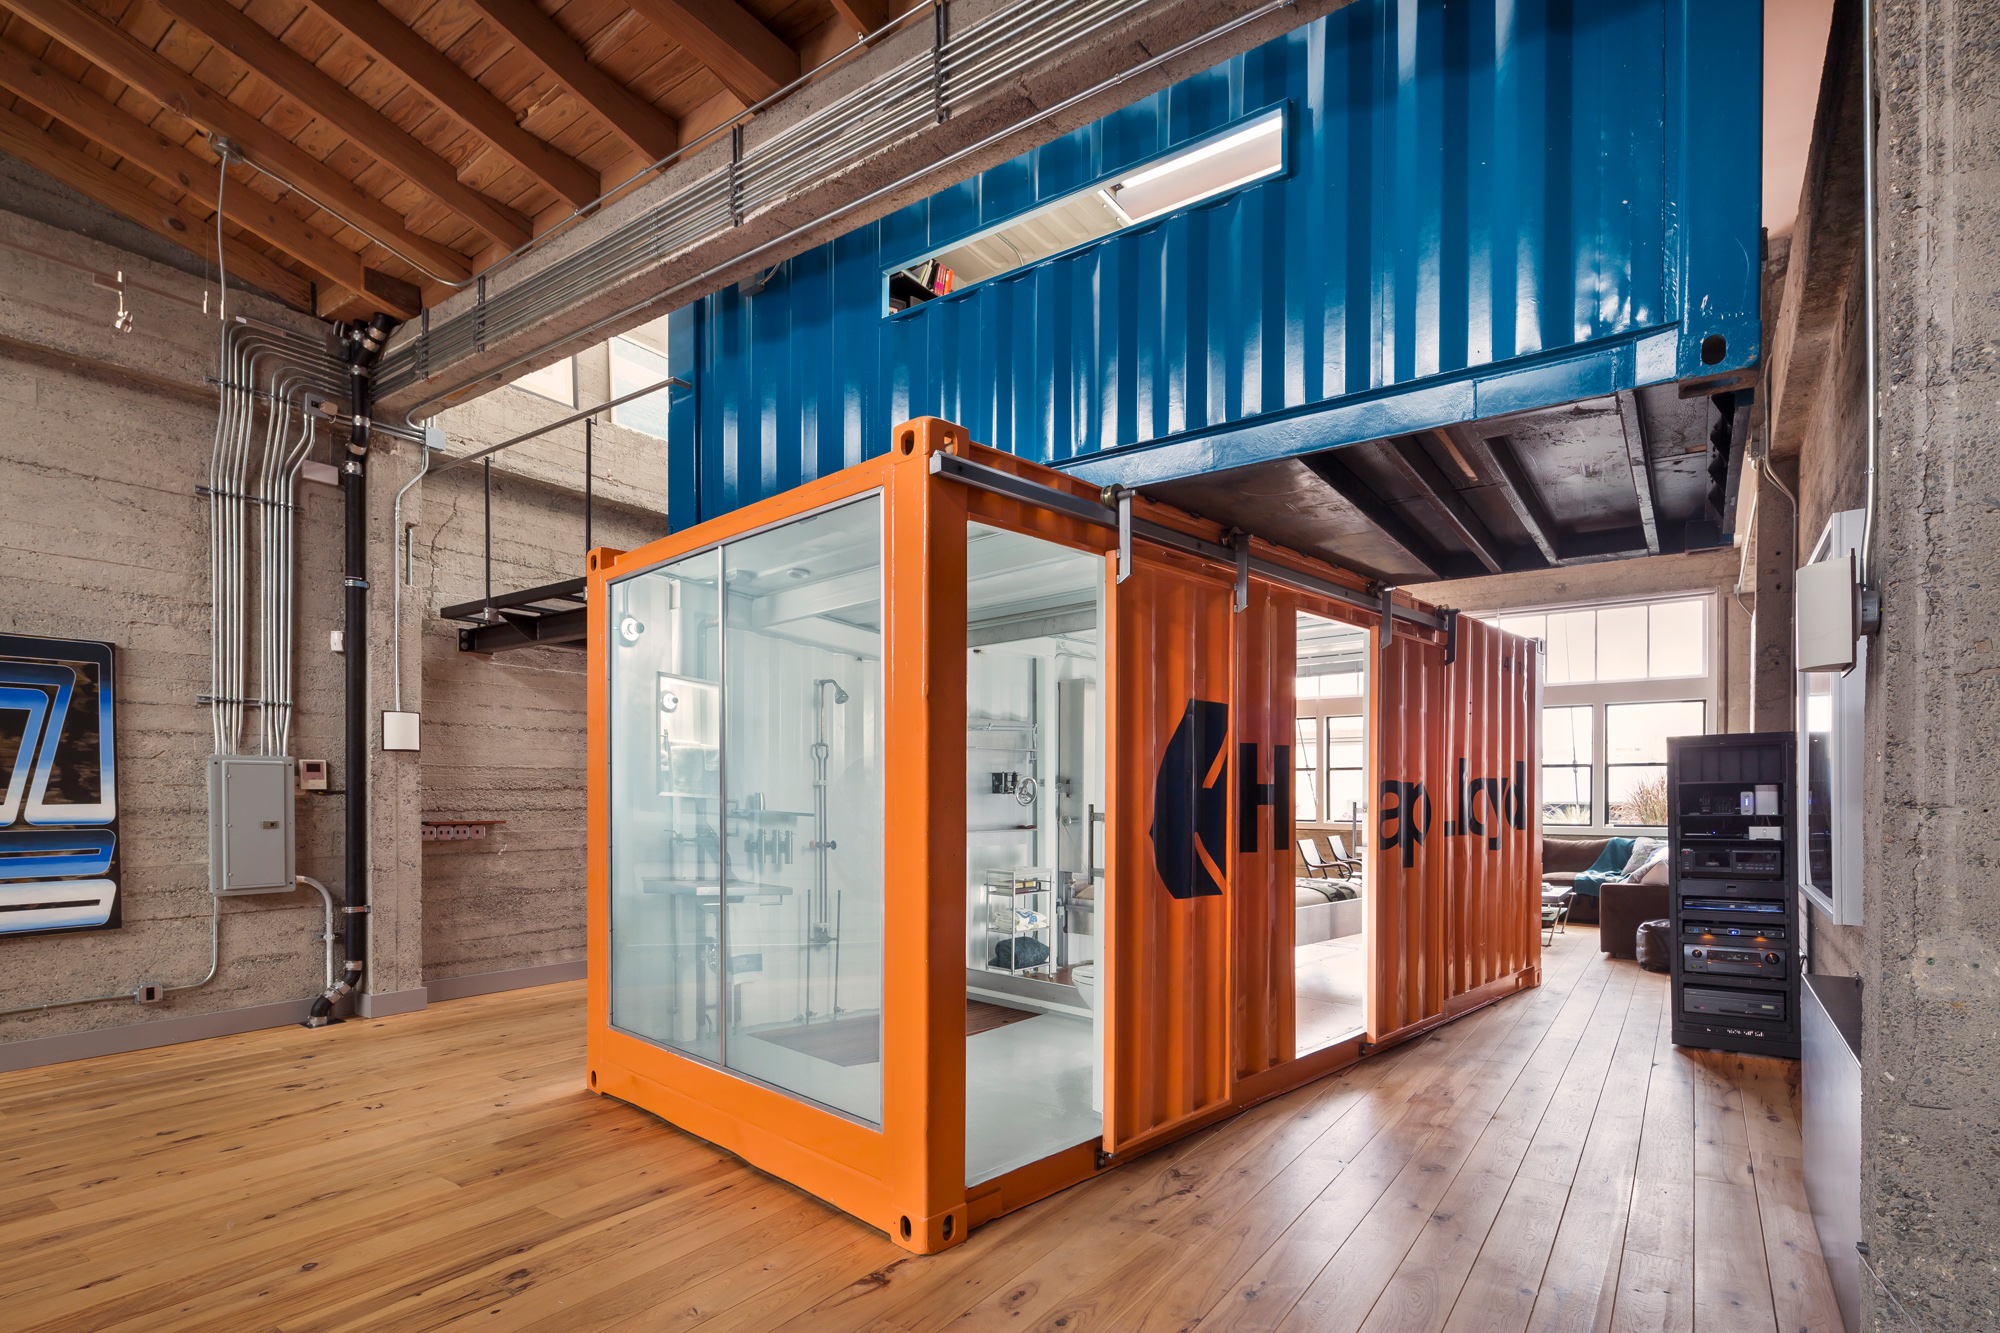 shipping container home in pacific heights asks 4 9 million curbed sf. Black Bedroom Furniture Sets. Home Design Ideas